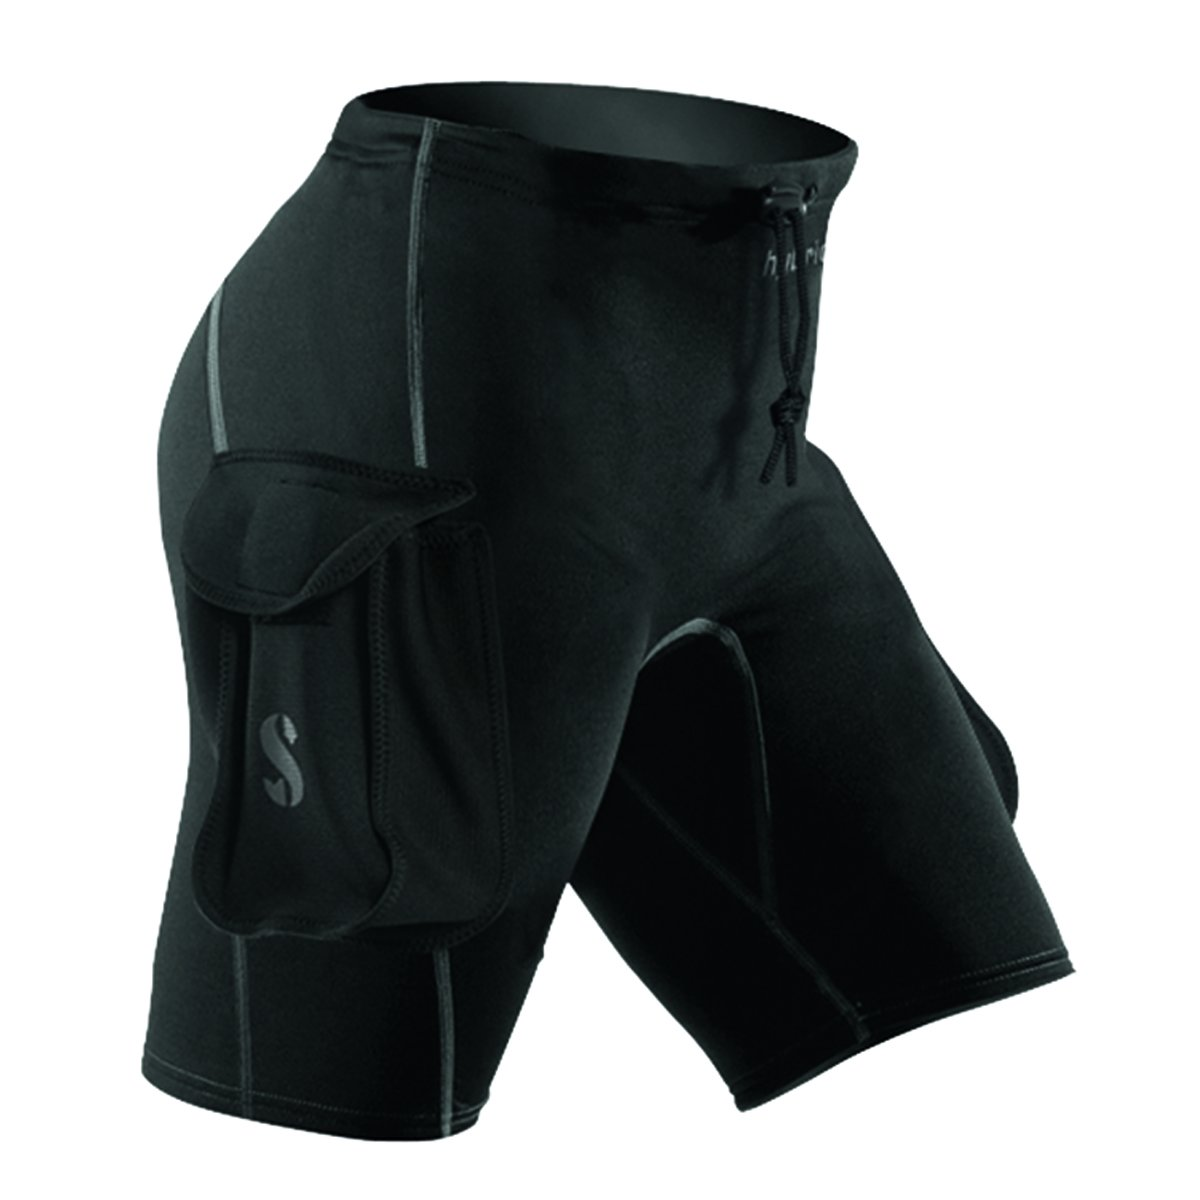 Scuba Pro Hybrid Diving Shorts w/Pockets (Men's)